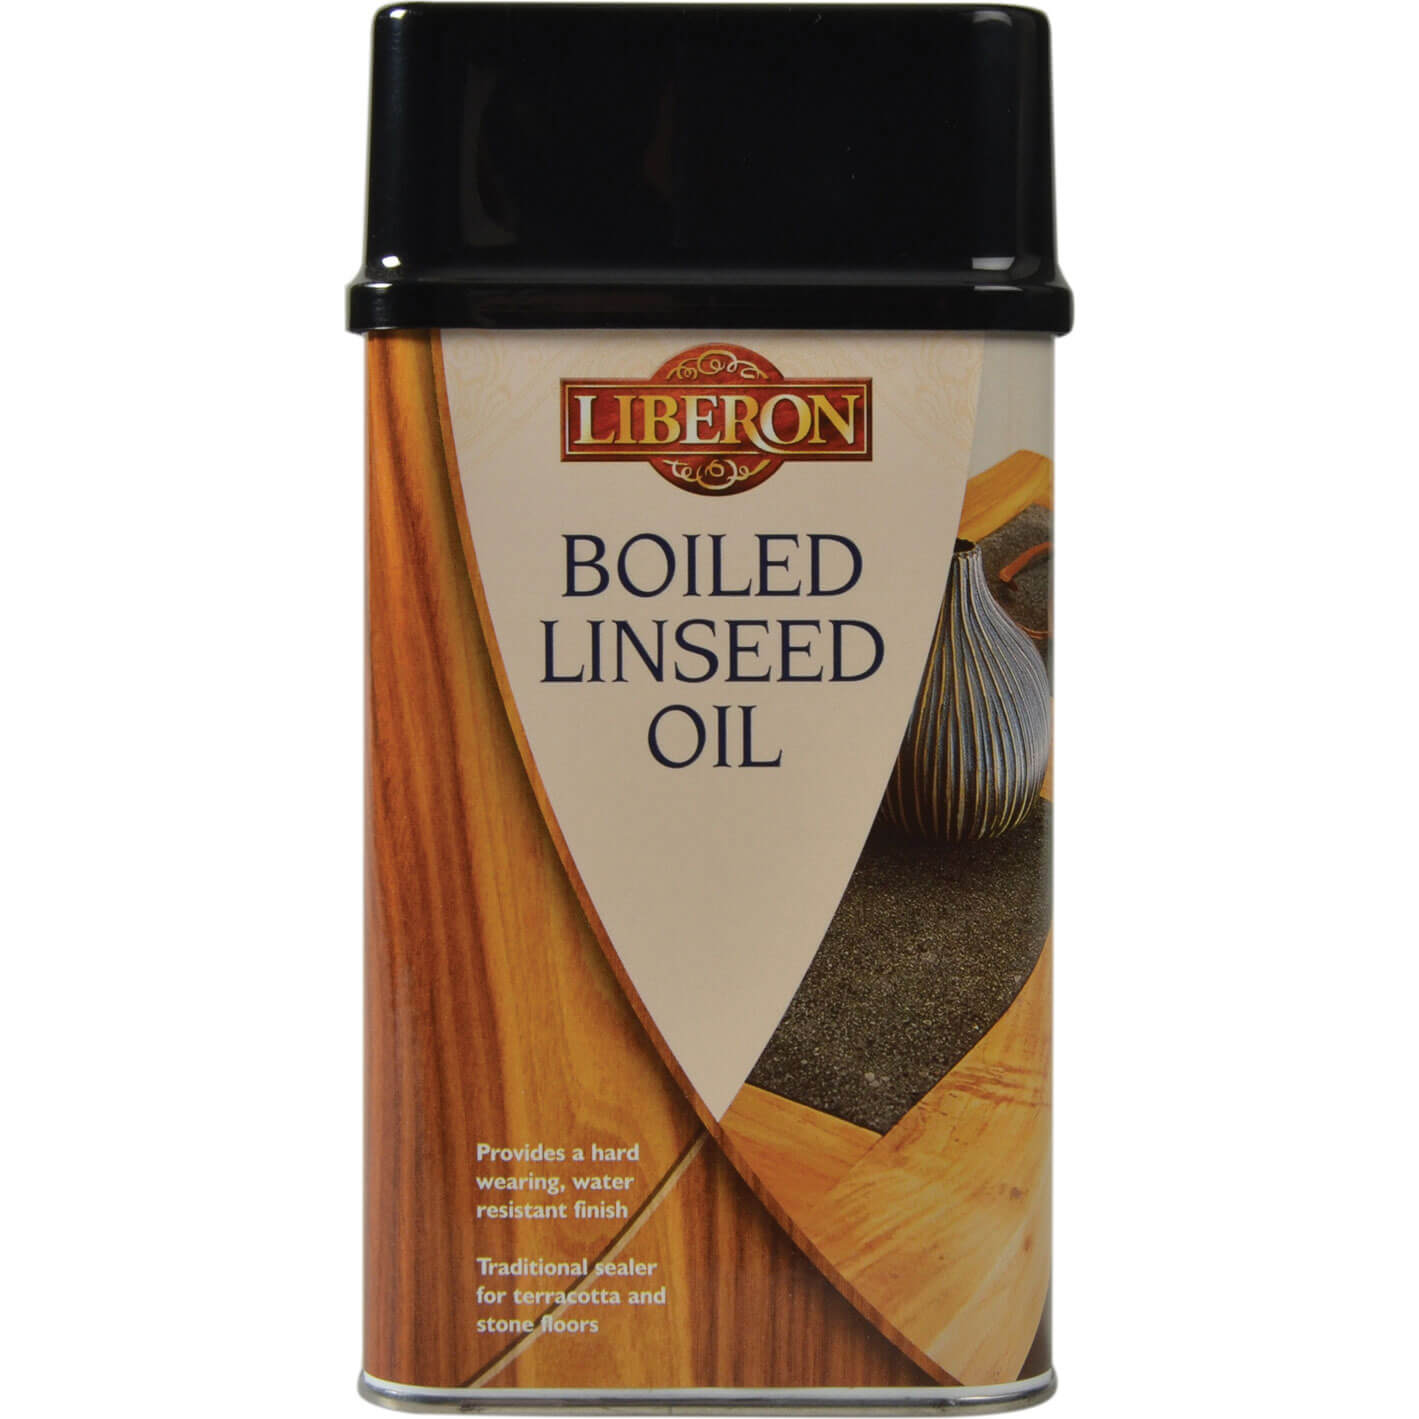 Image of Liberon Boiled Linseed Oil 500ml